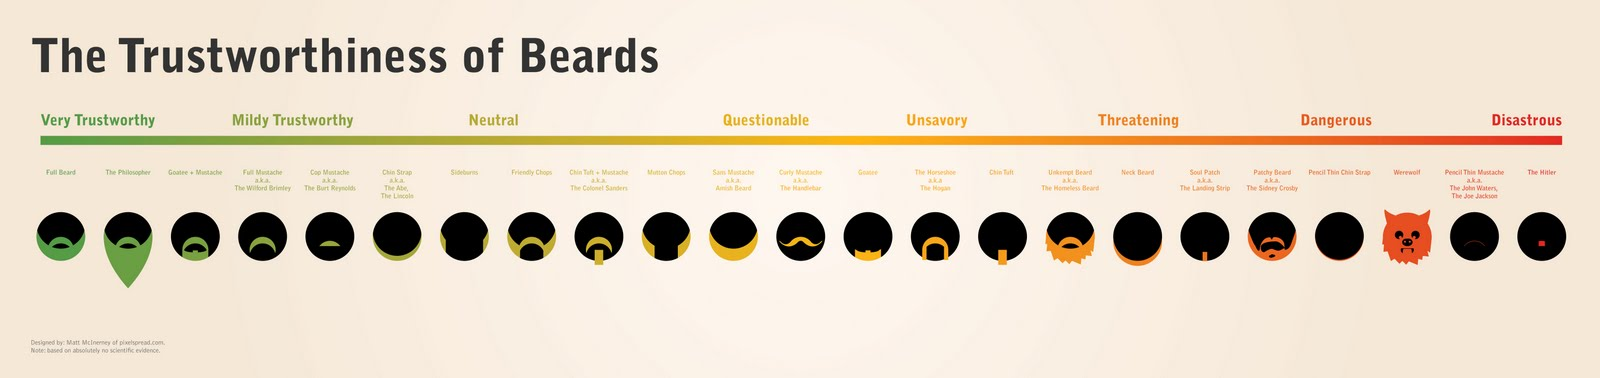 The Trustworthiness of beards: A sliding scale – St. Eutychus